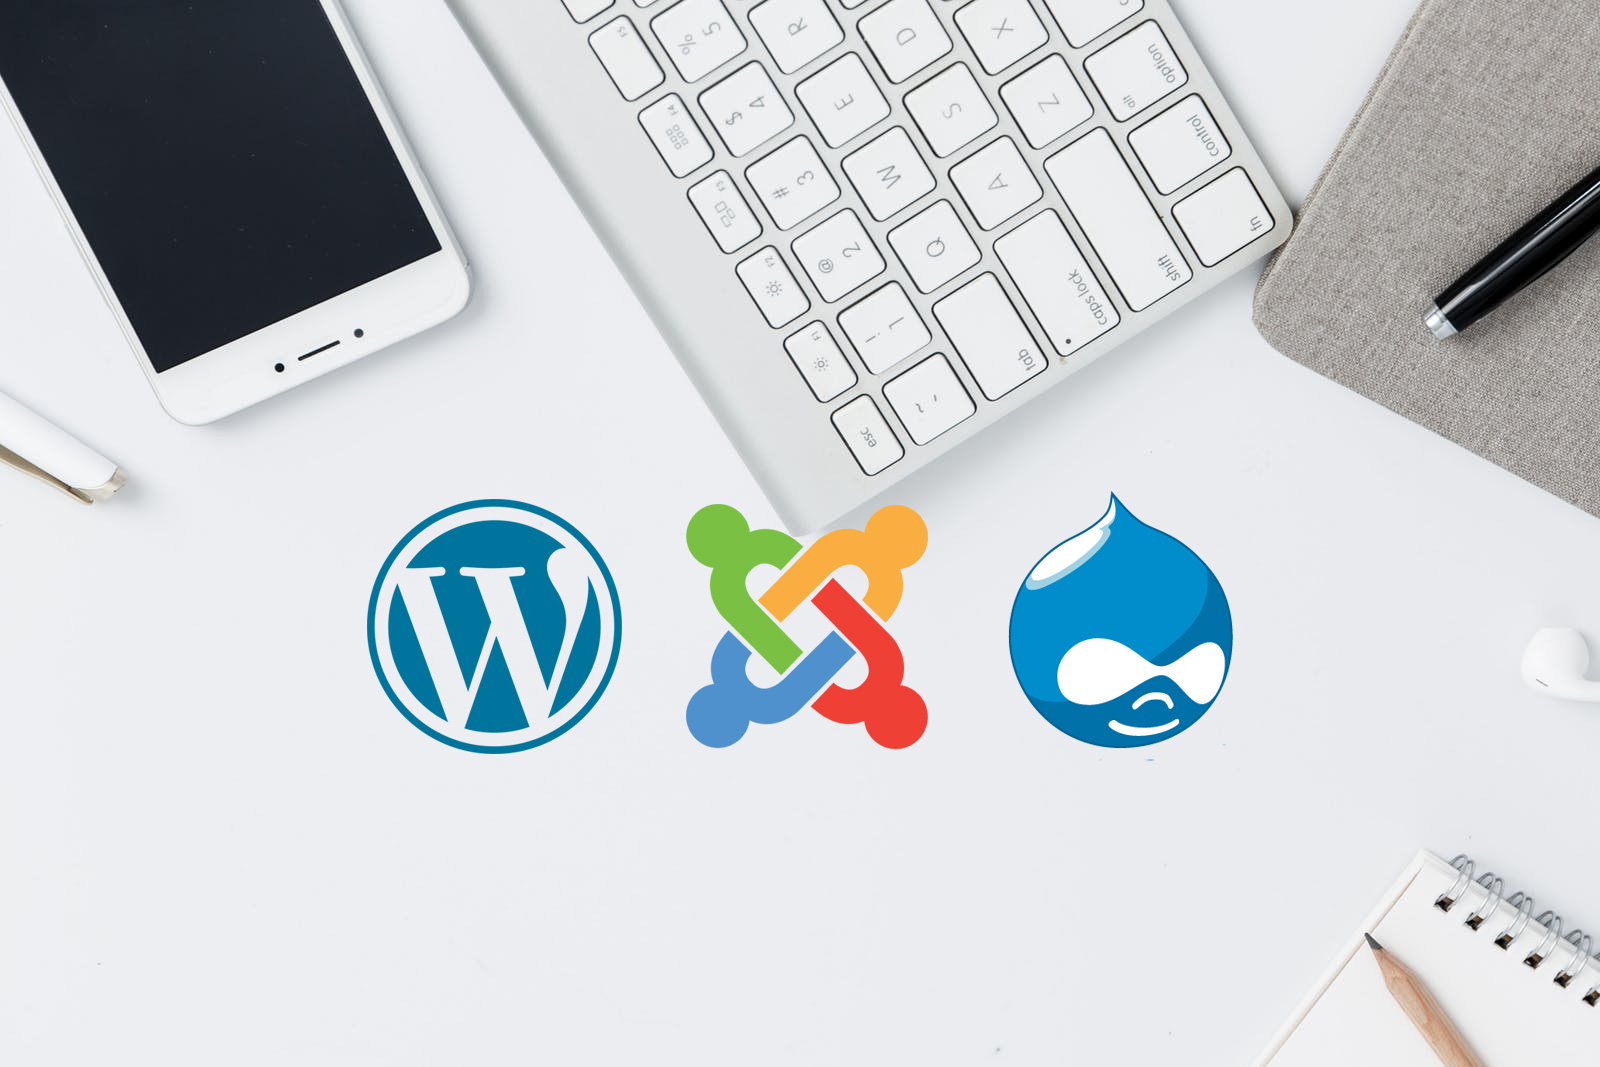 WordPress vs Joomla vs Drupal Comparison - What is best for your business website